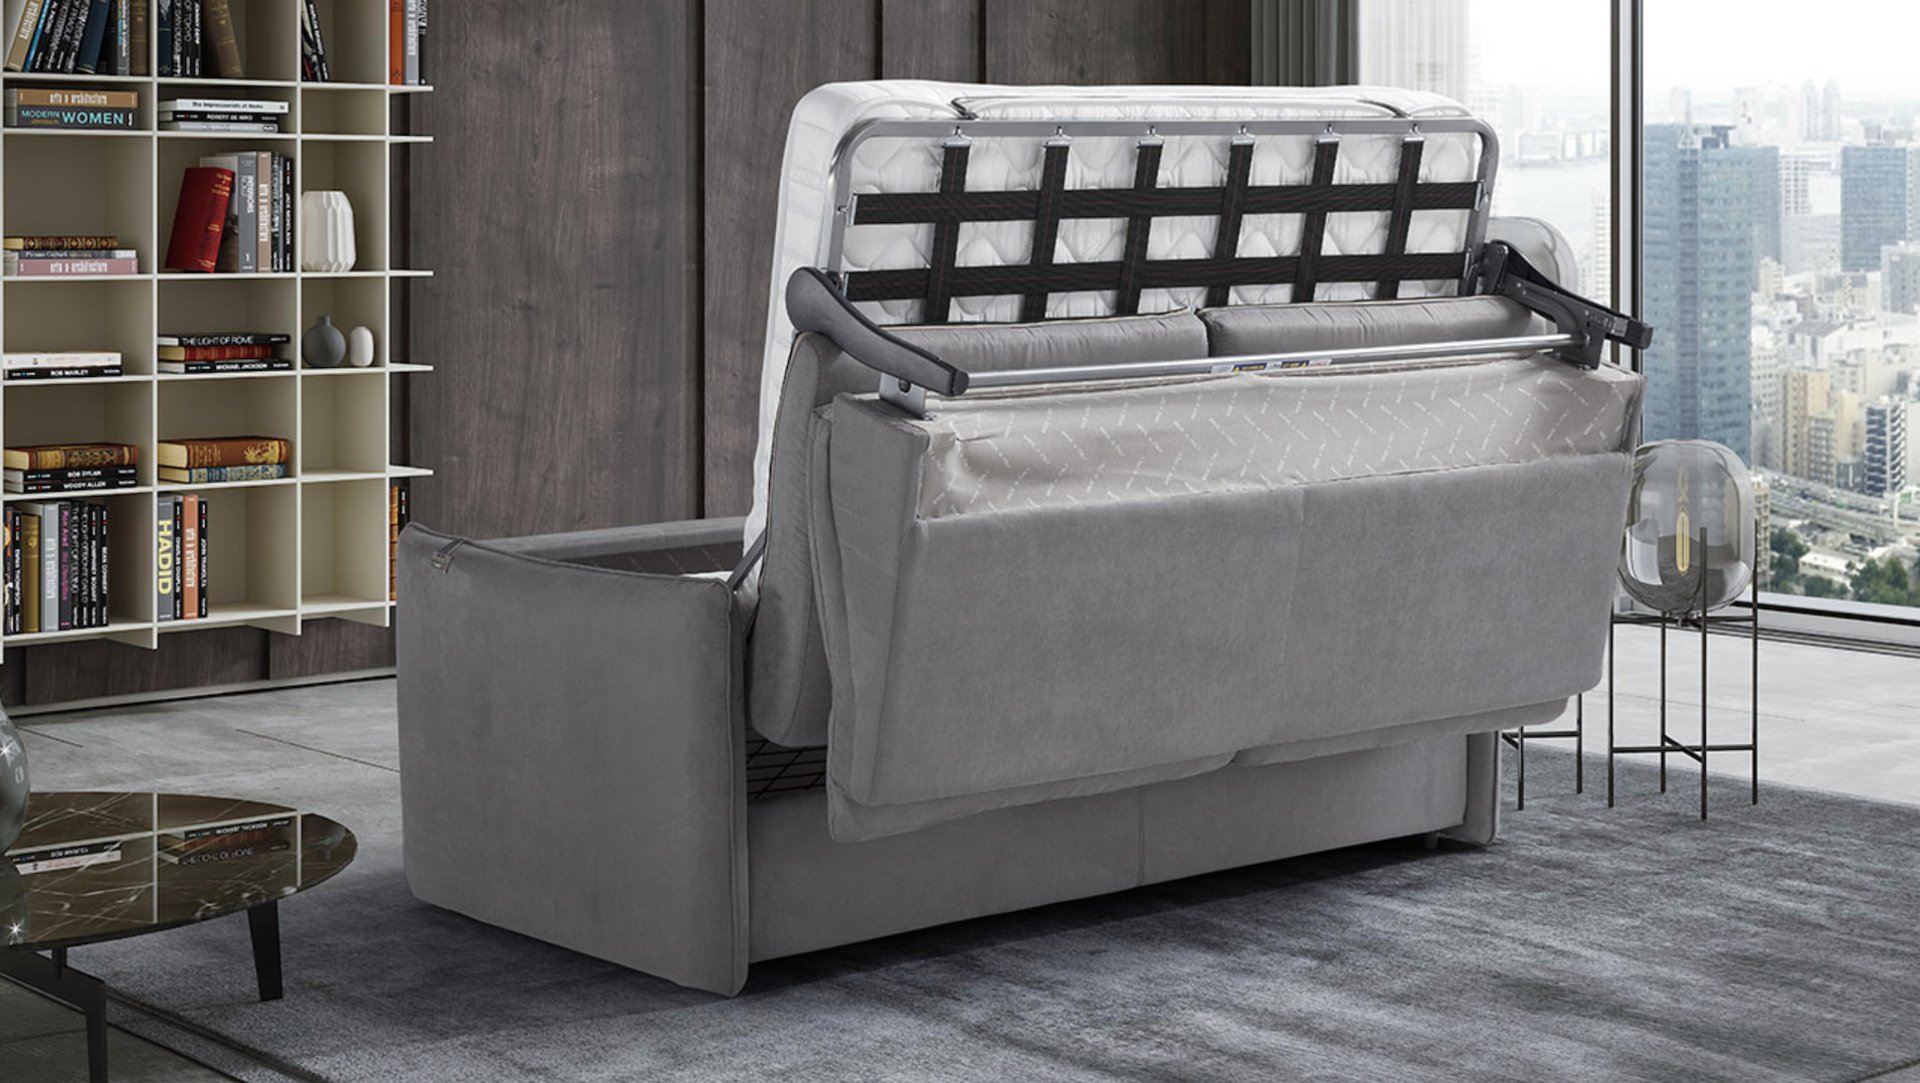 'AIMEE' Italian Crafted 3 Seat Sofa Bed in PLAZA SILVER RRP £1979 - Image 3 of 5